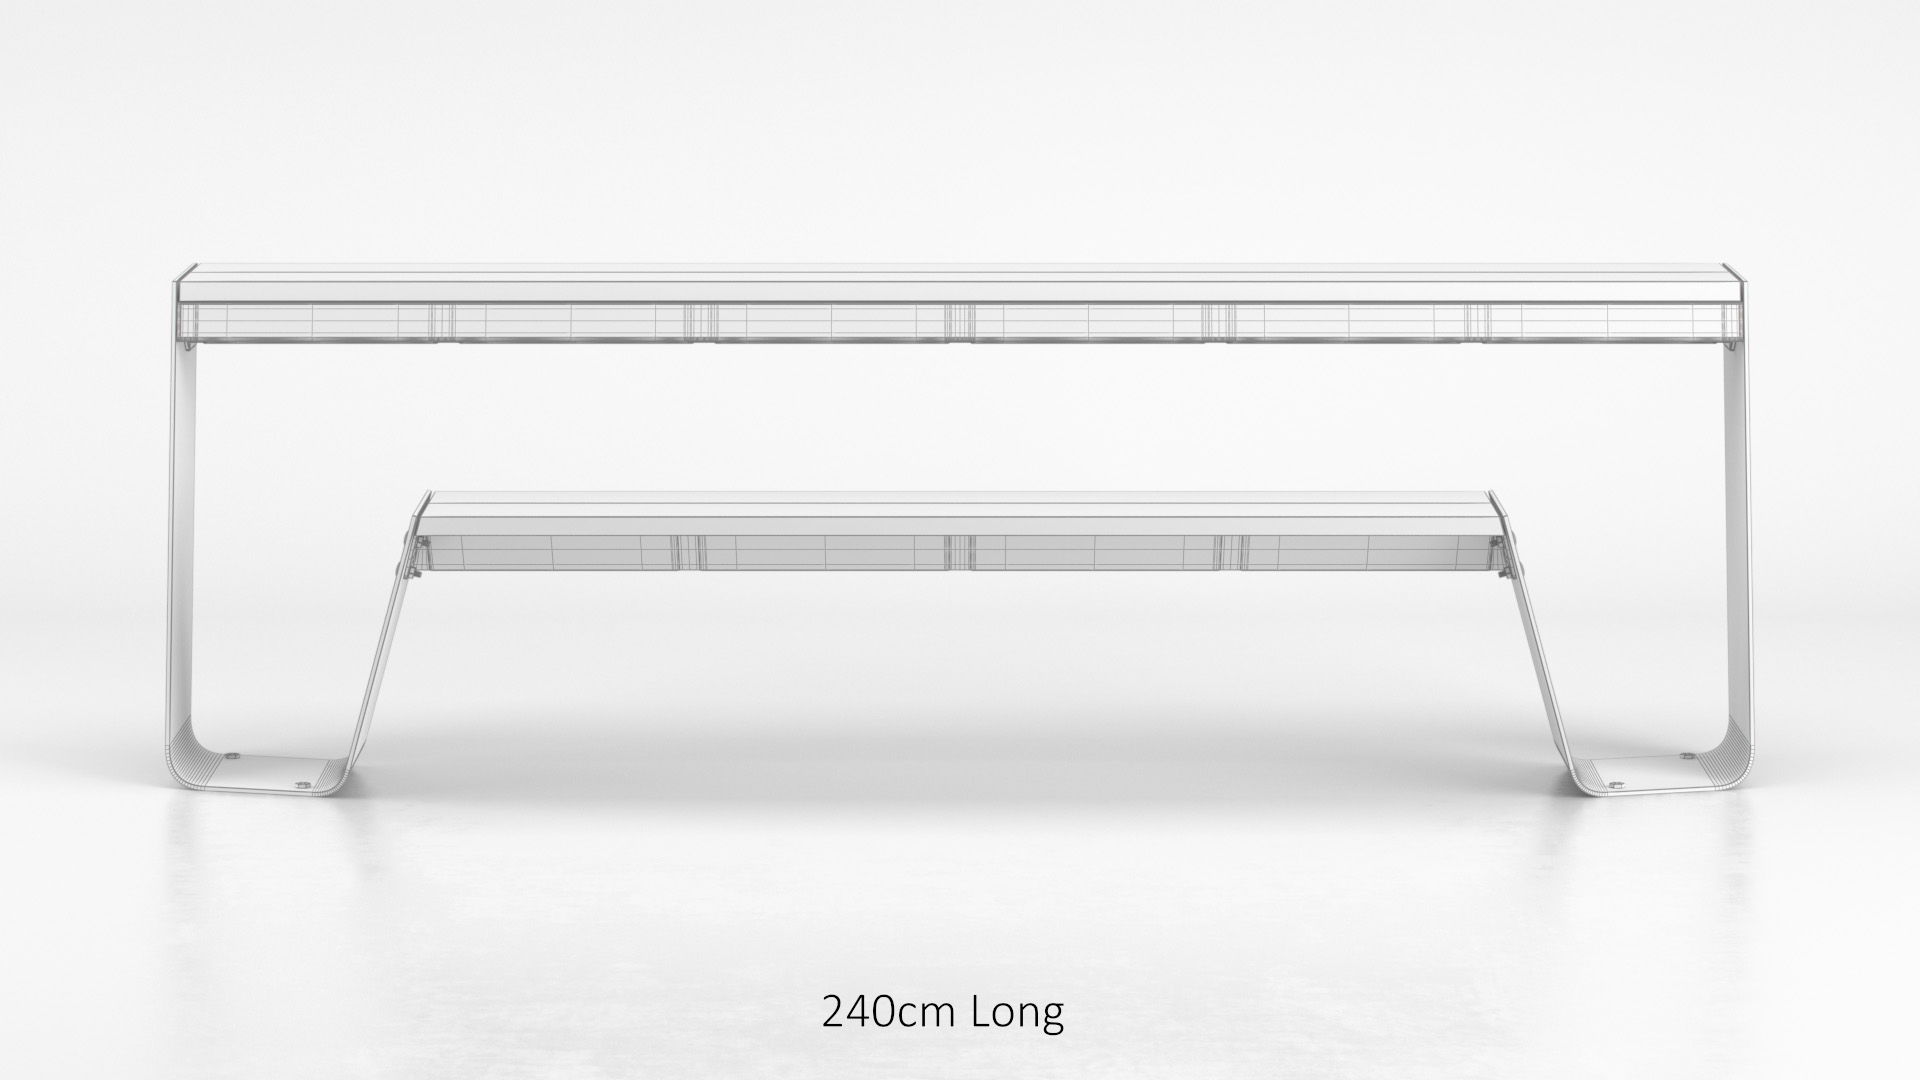 extremis_hopperbench_240cm_whiteset_01_wire_0001